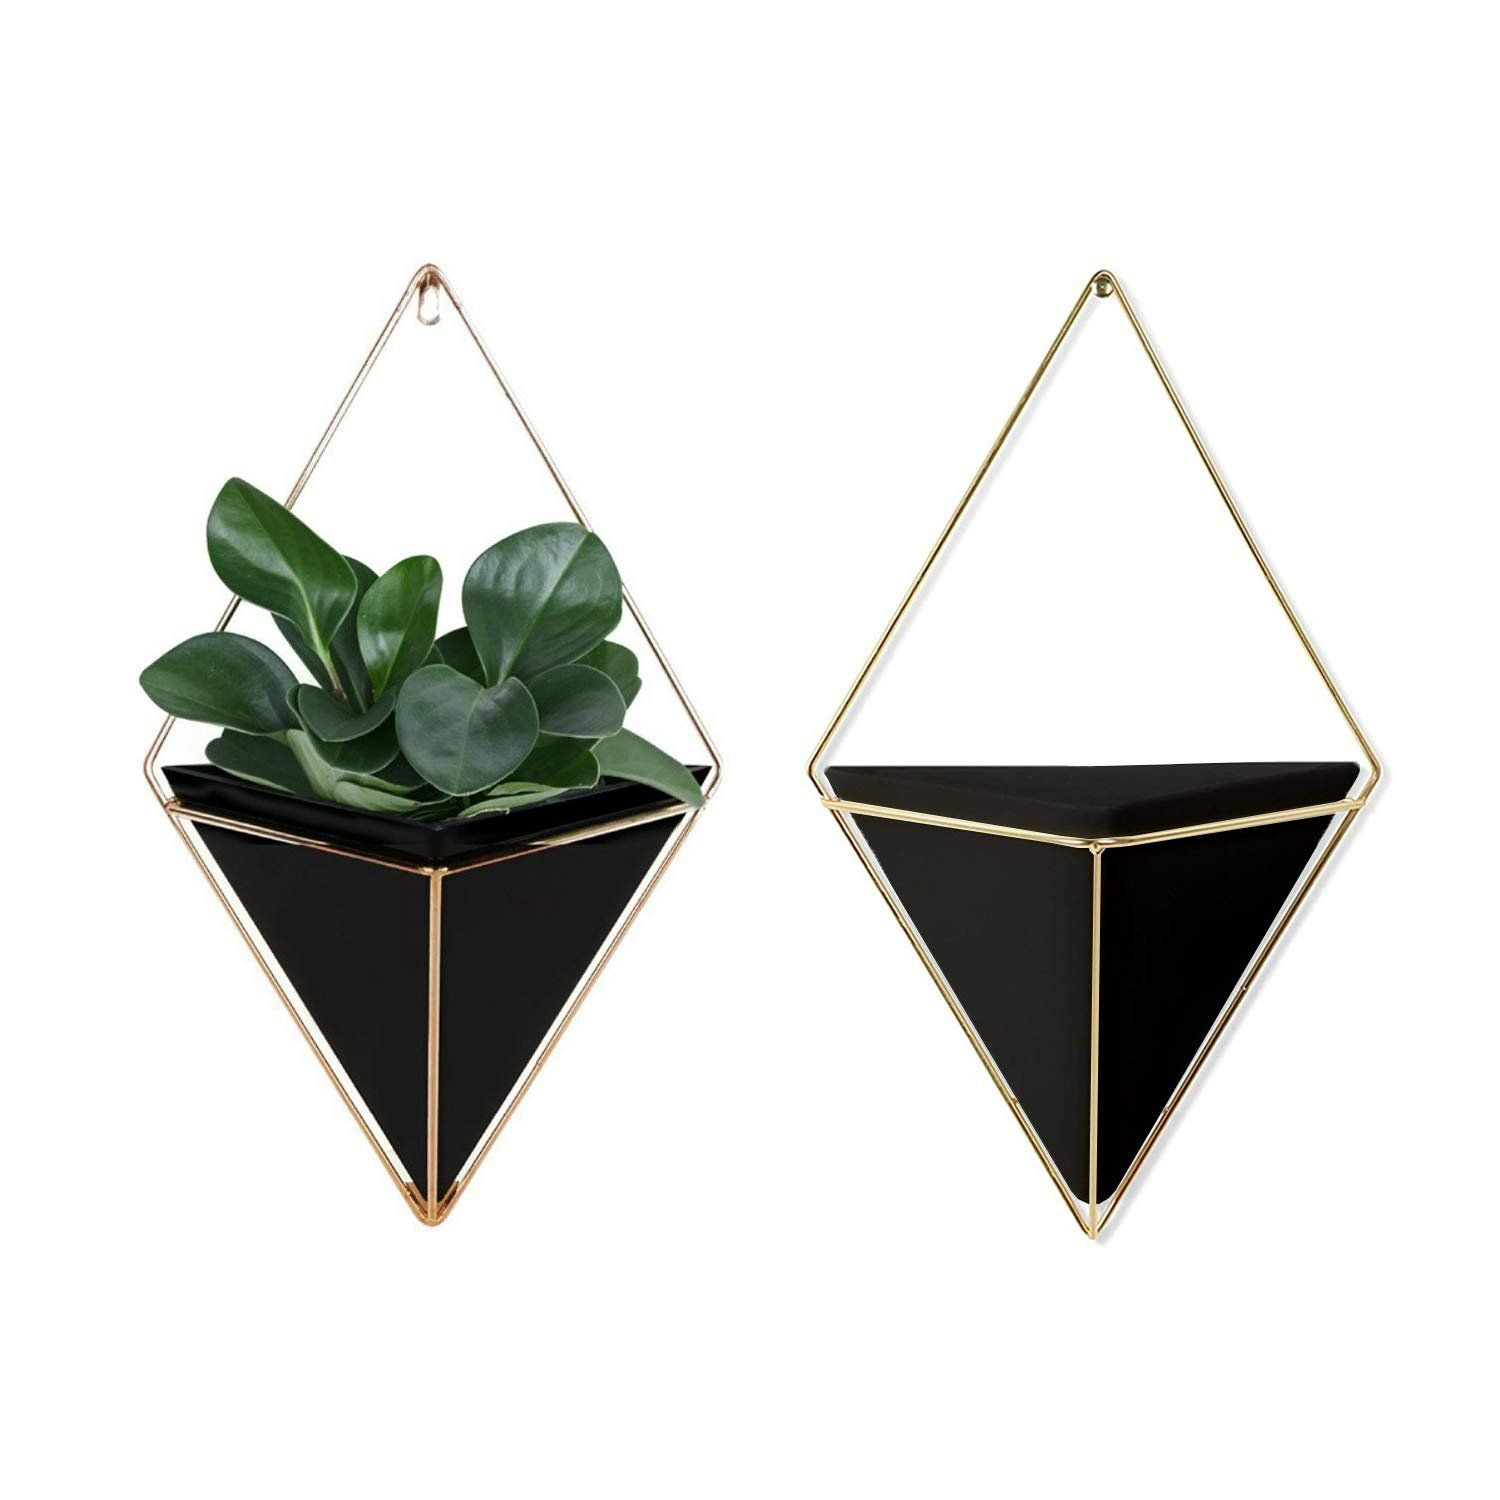 Geometric Wall Planter Set Of 2 Decorative Hanging Planters With Brass Wall Decor Frame Modern Wall Plant Holders In Black Terrarium Planters For Succulents In 2020 Wall Plant Holder Plant Wall